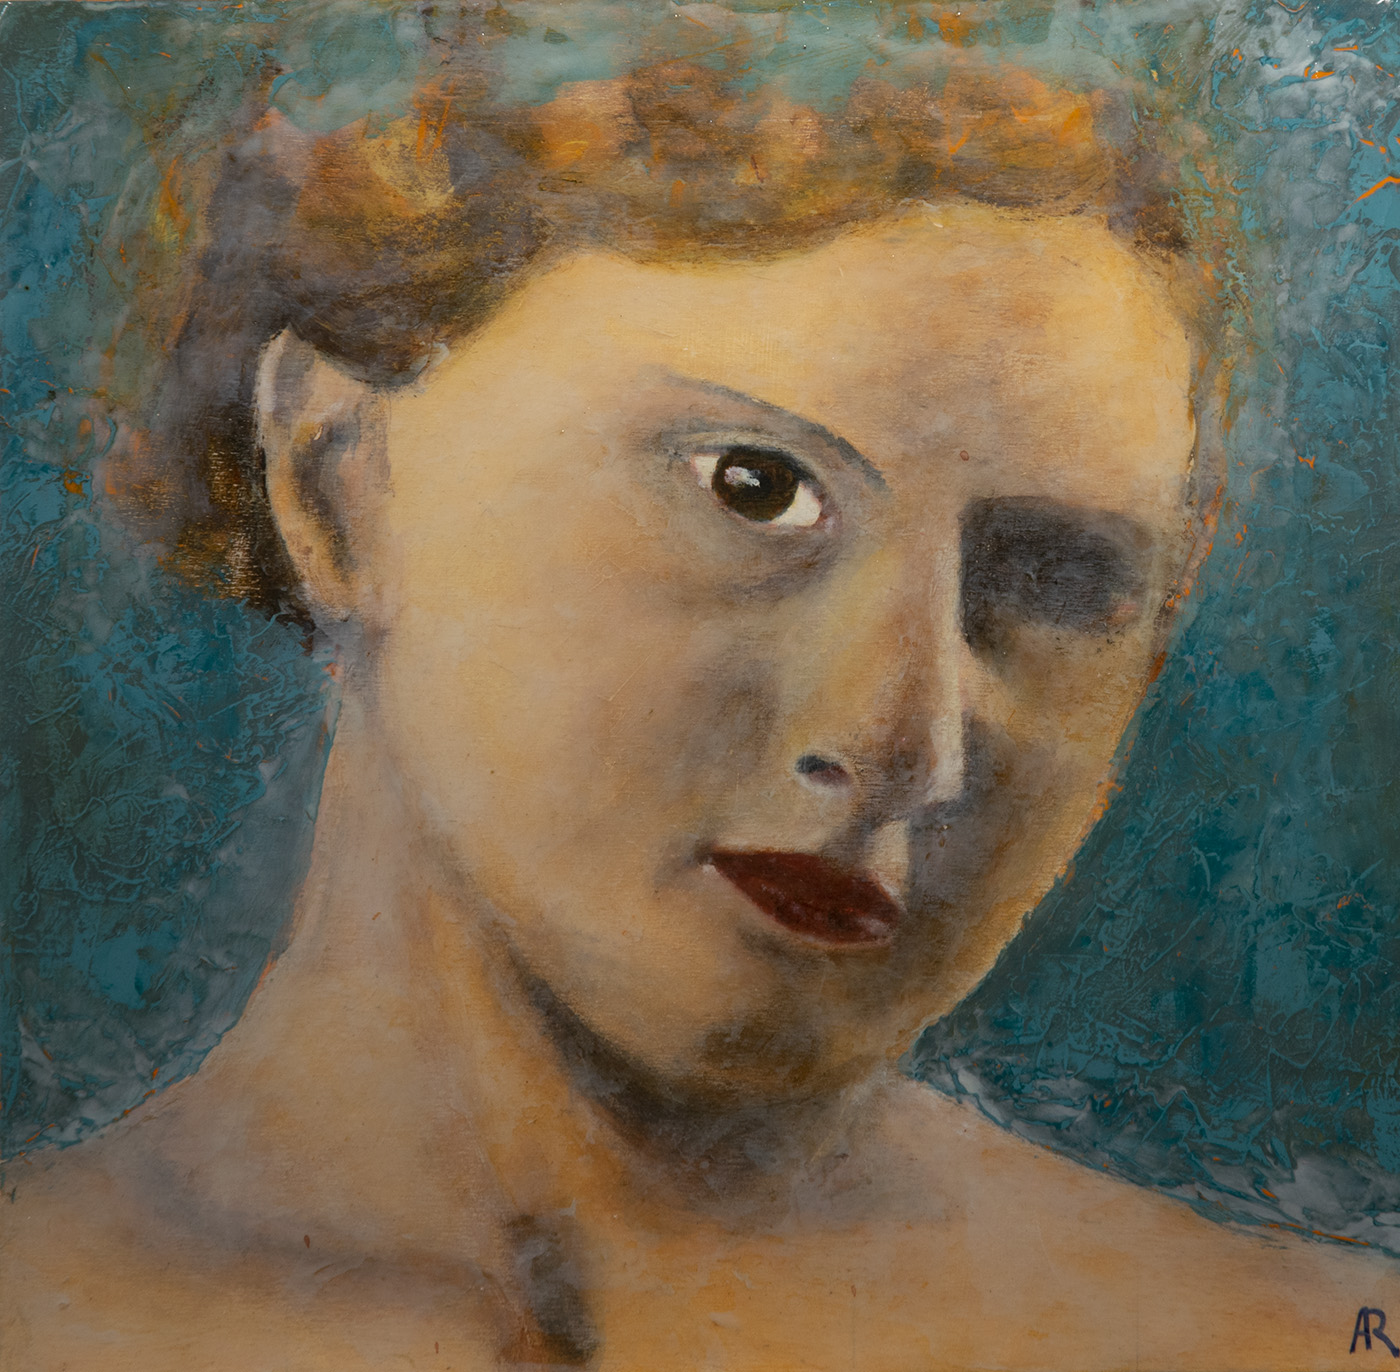 Fading past, portrait of a woman by andré romijn